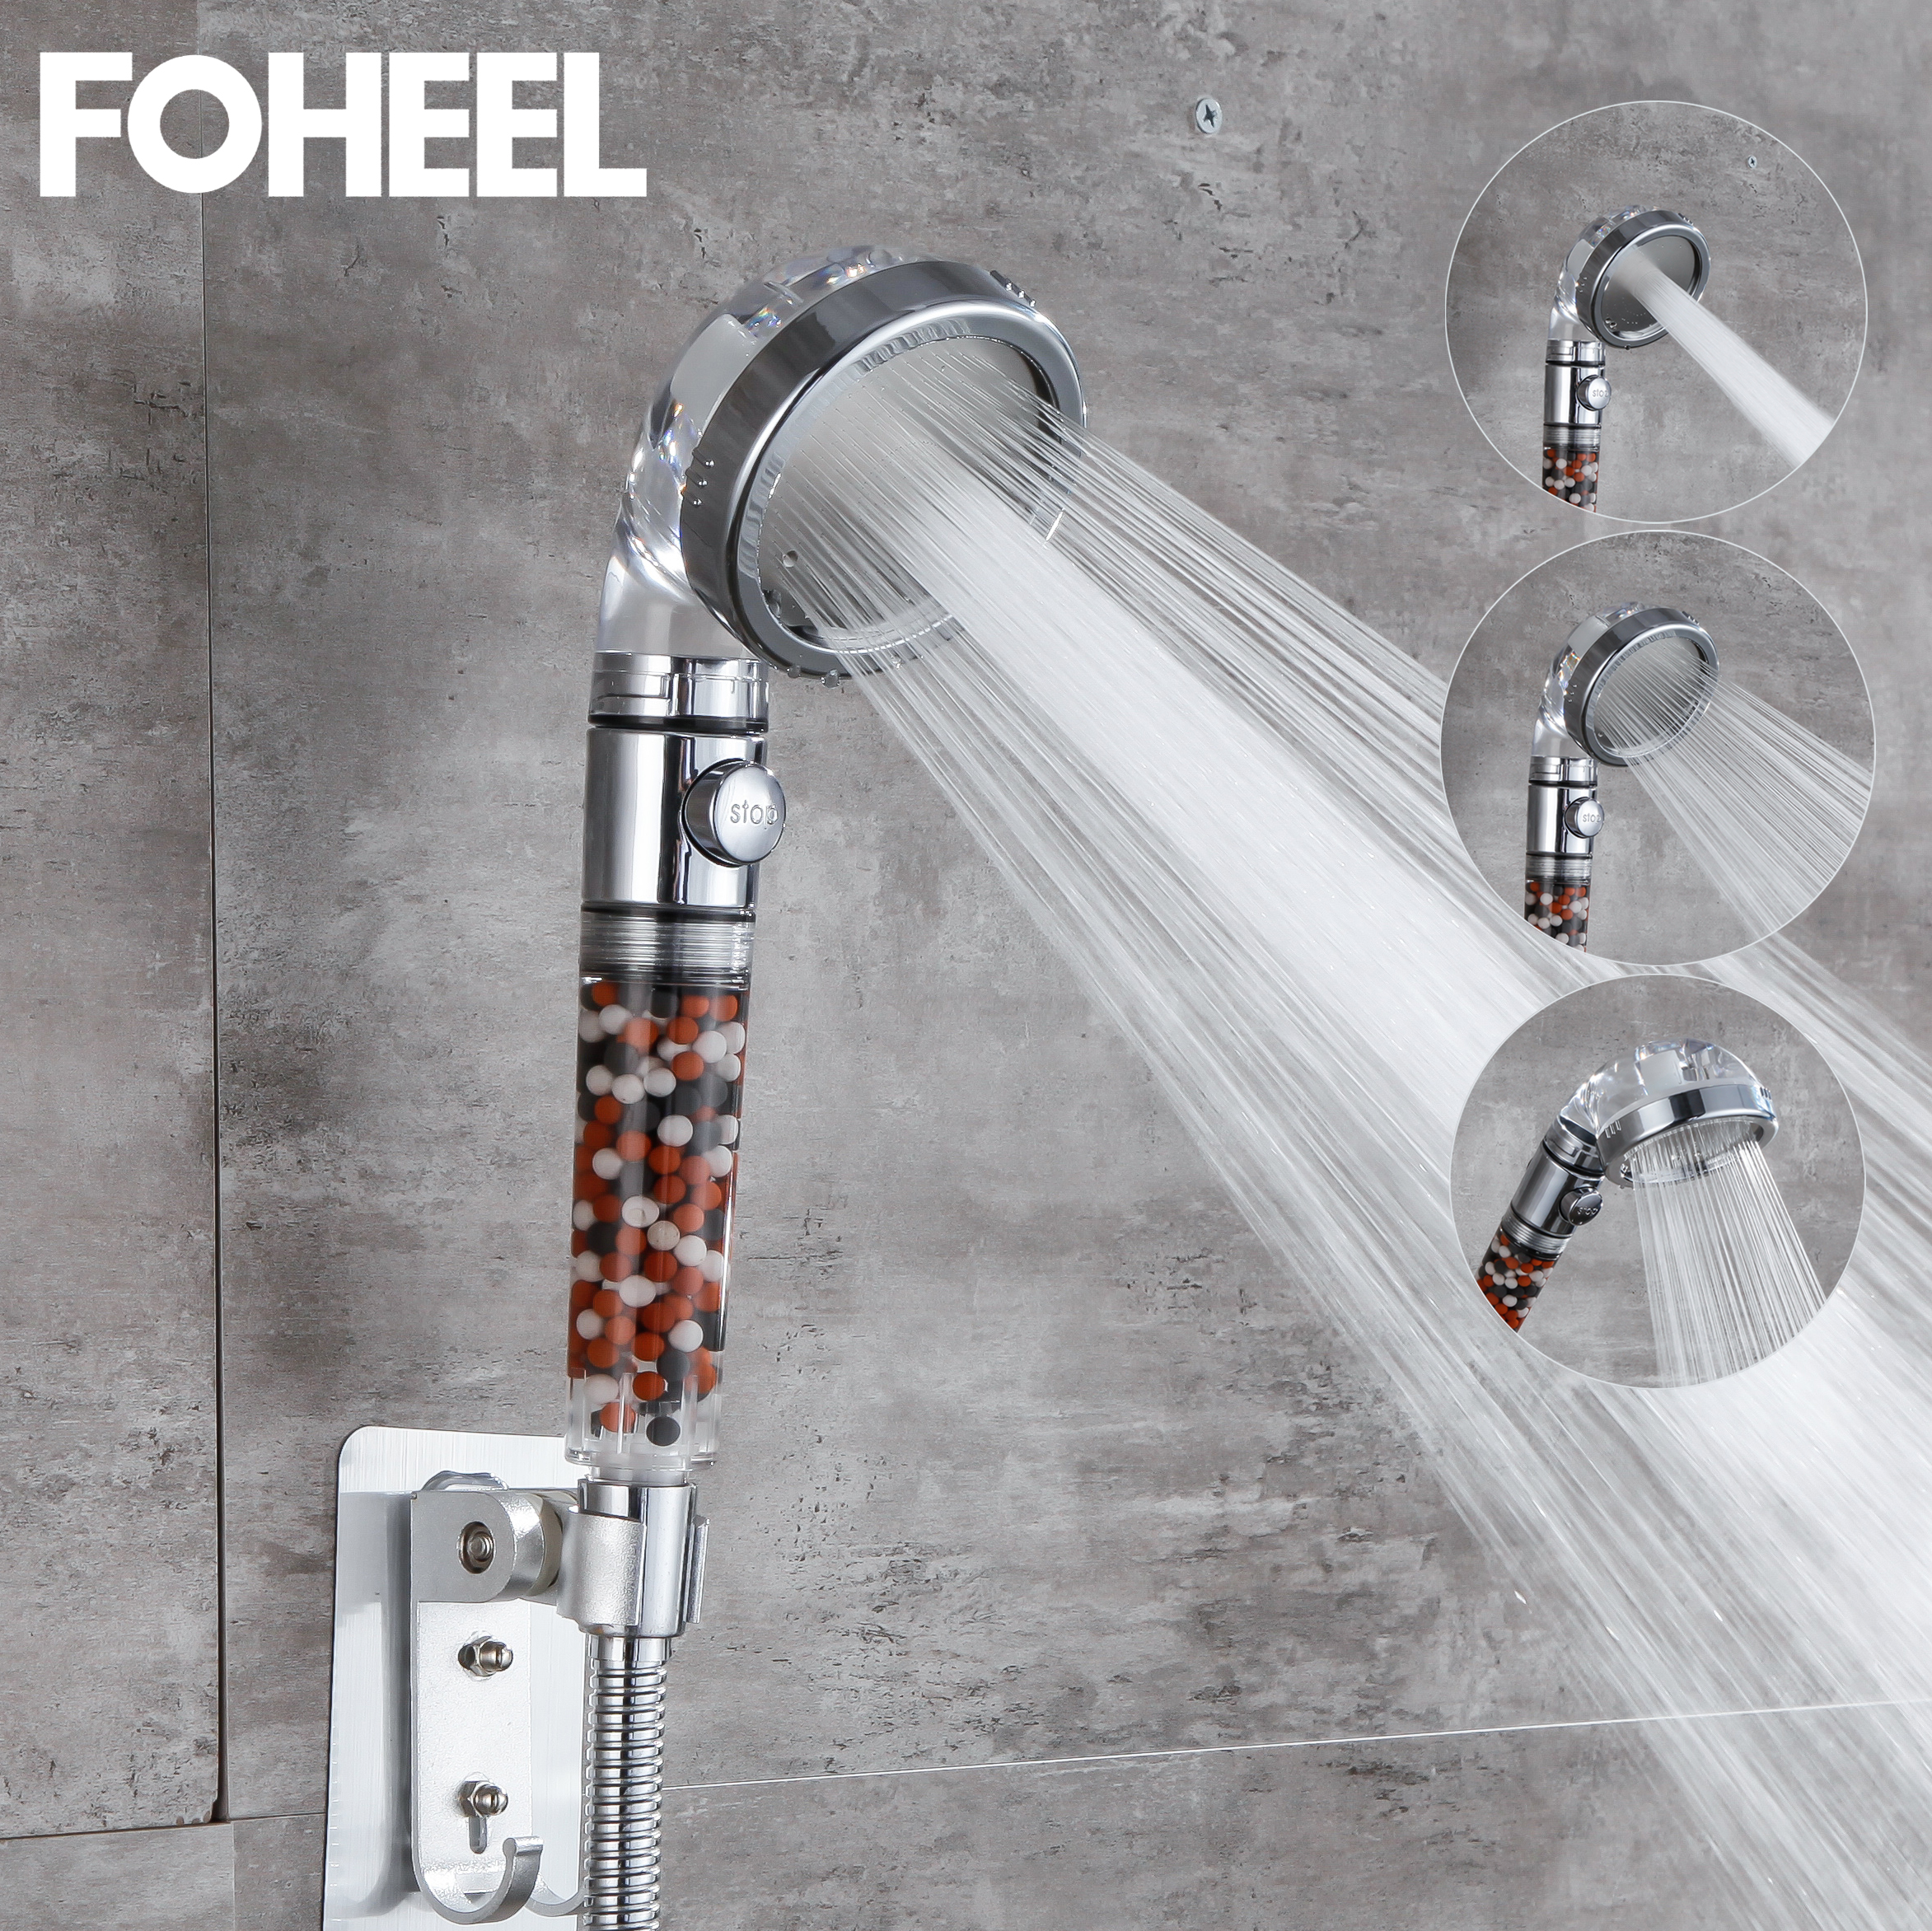 FOHEEL Shower Head Adjustable 3 Mode Shower Head Hand Shower High Pressure Water Saving One Button To Stop Water Shower Heads